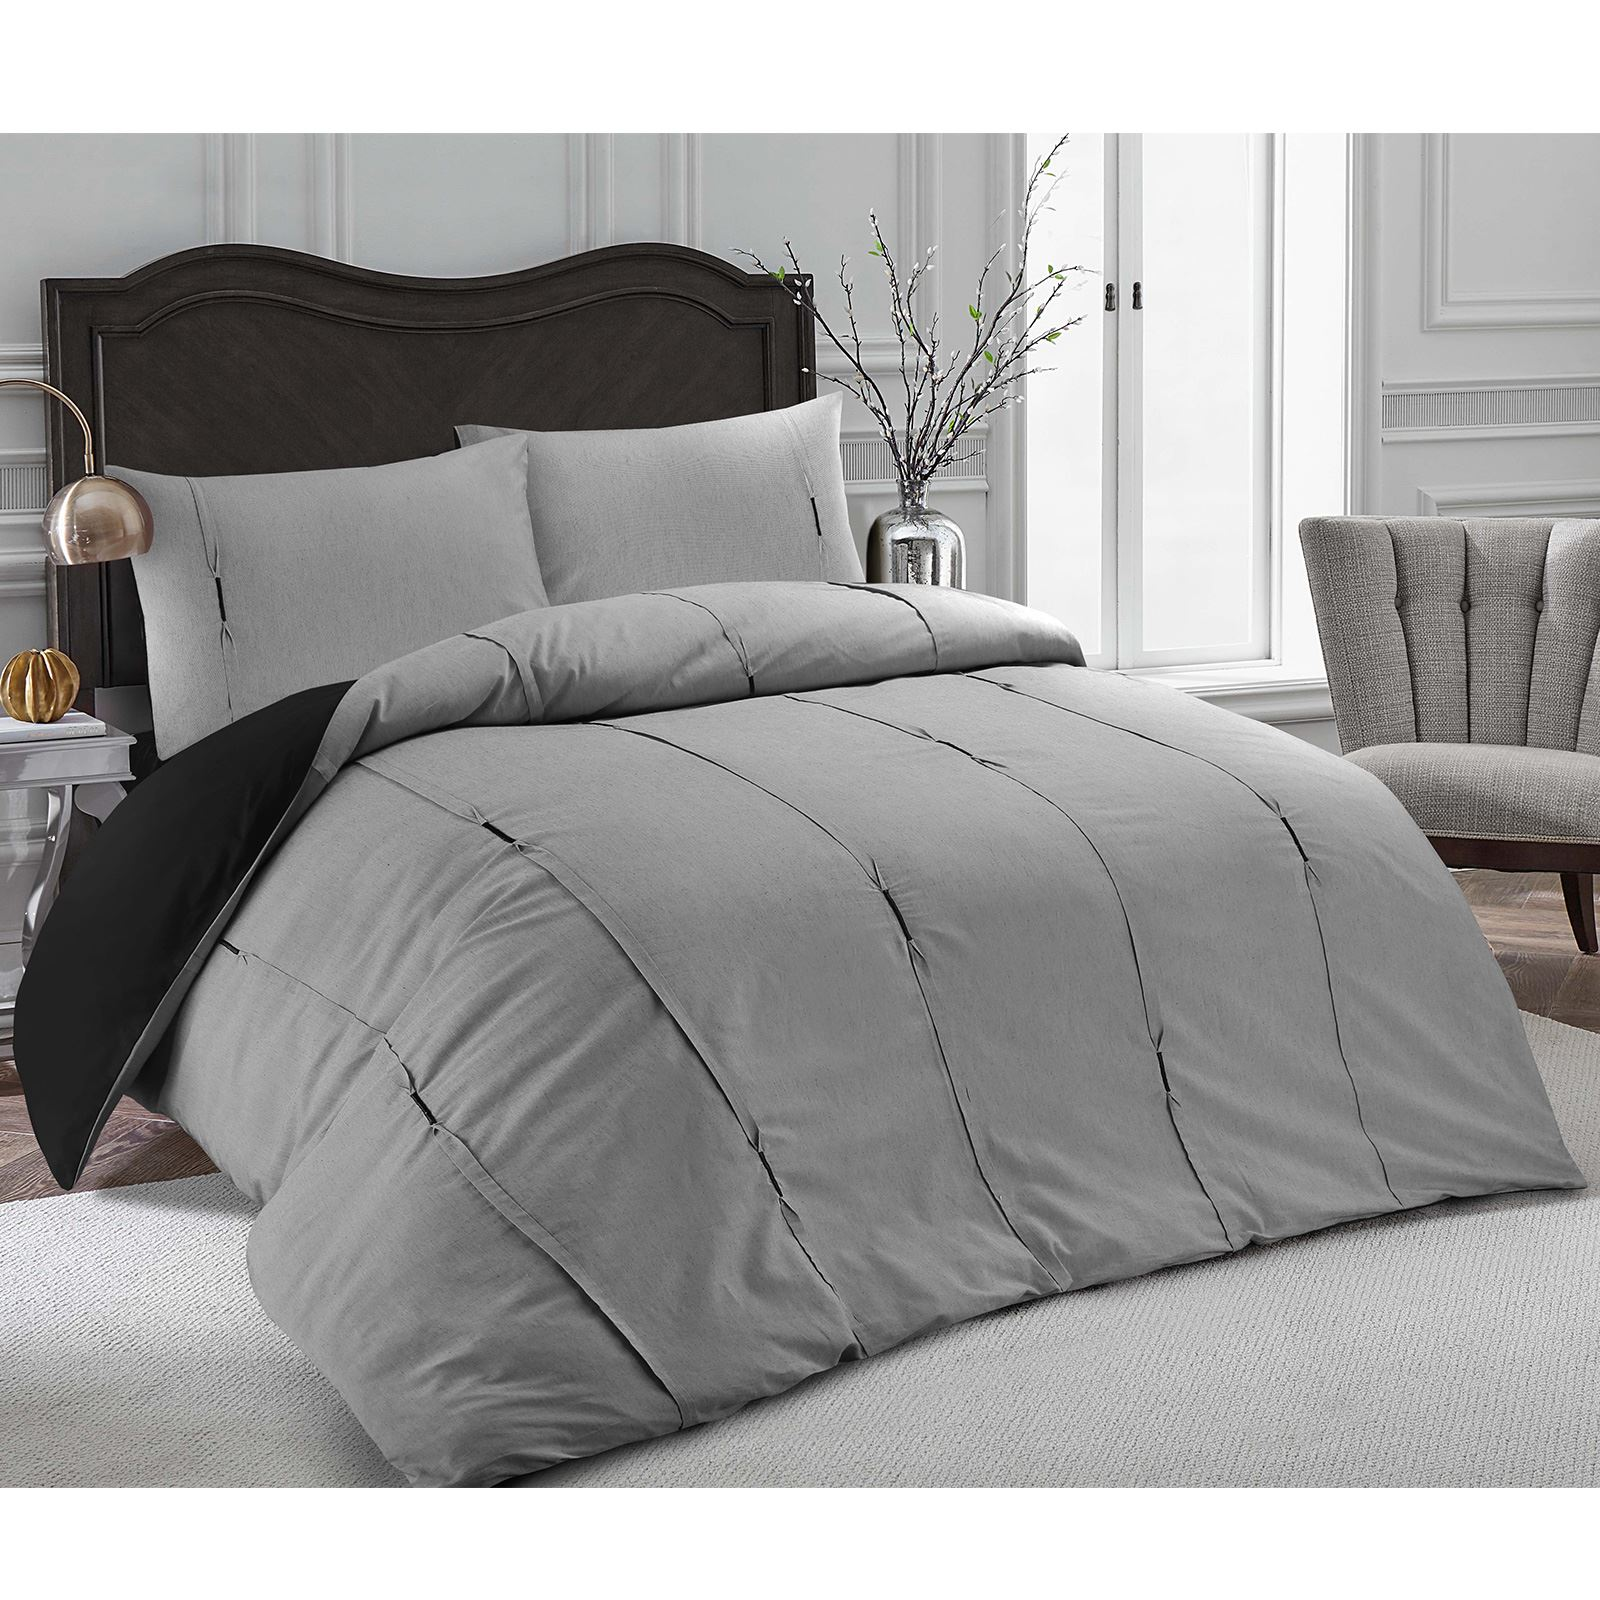 Luxury-Embellished-Duvet-Cover-Set-Single-Double-Super-King-Size-Bedding-Grey thumbnail 16